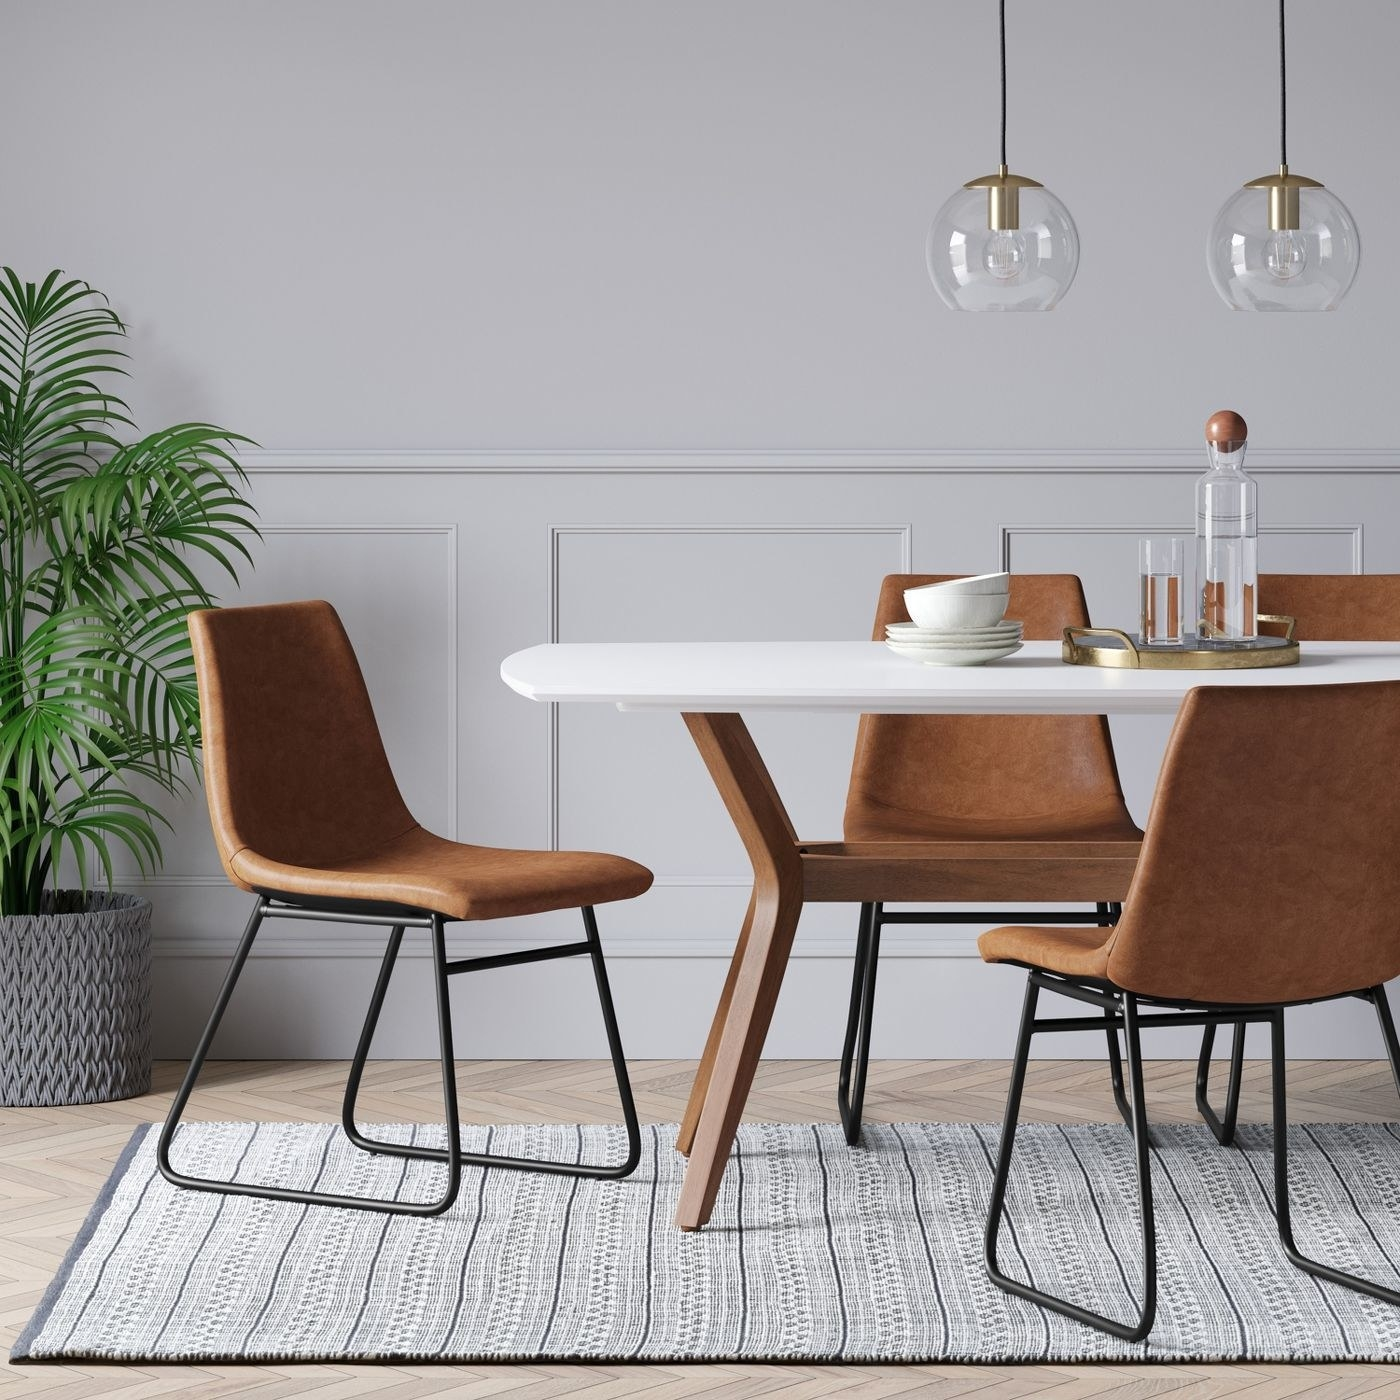 The brown chairs in a dining room